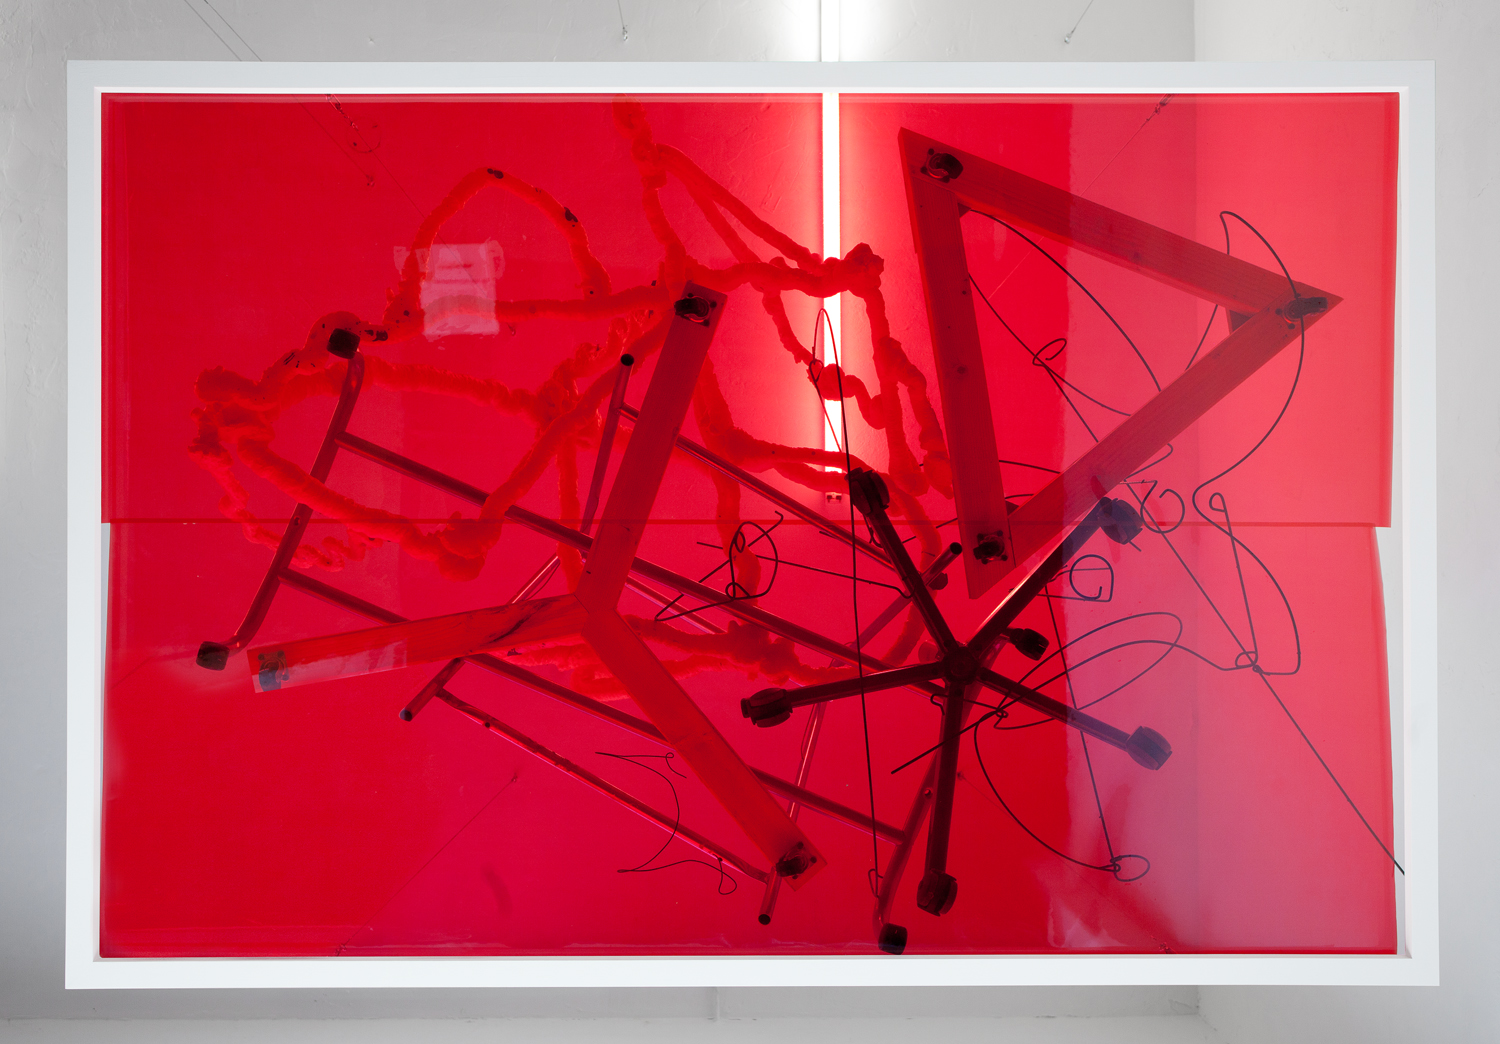 SEAN KENNEDY THOMAS DUNCAN GALLERY 2012 RED FILM PIECE